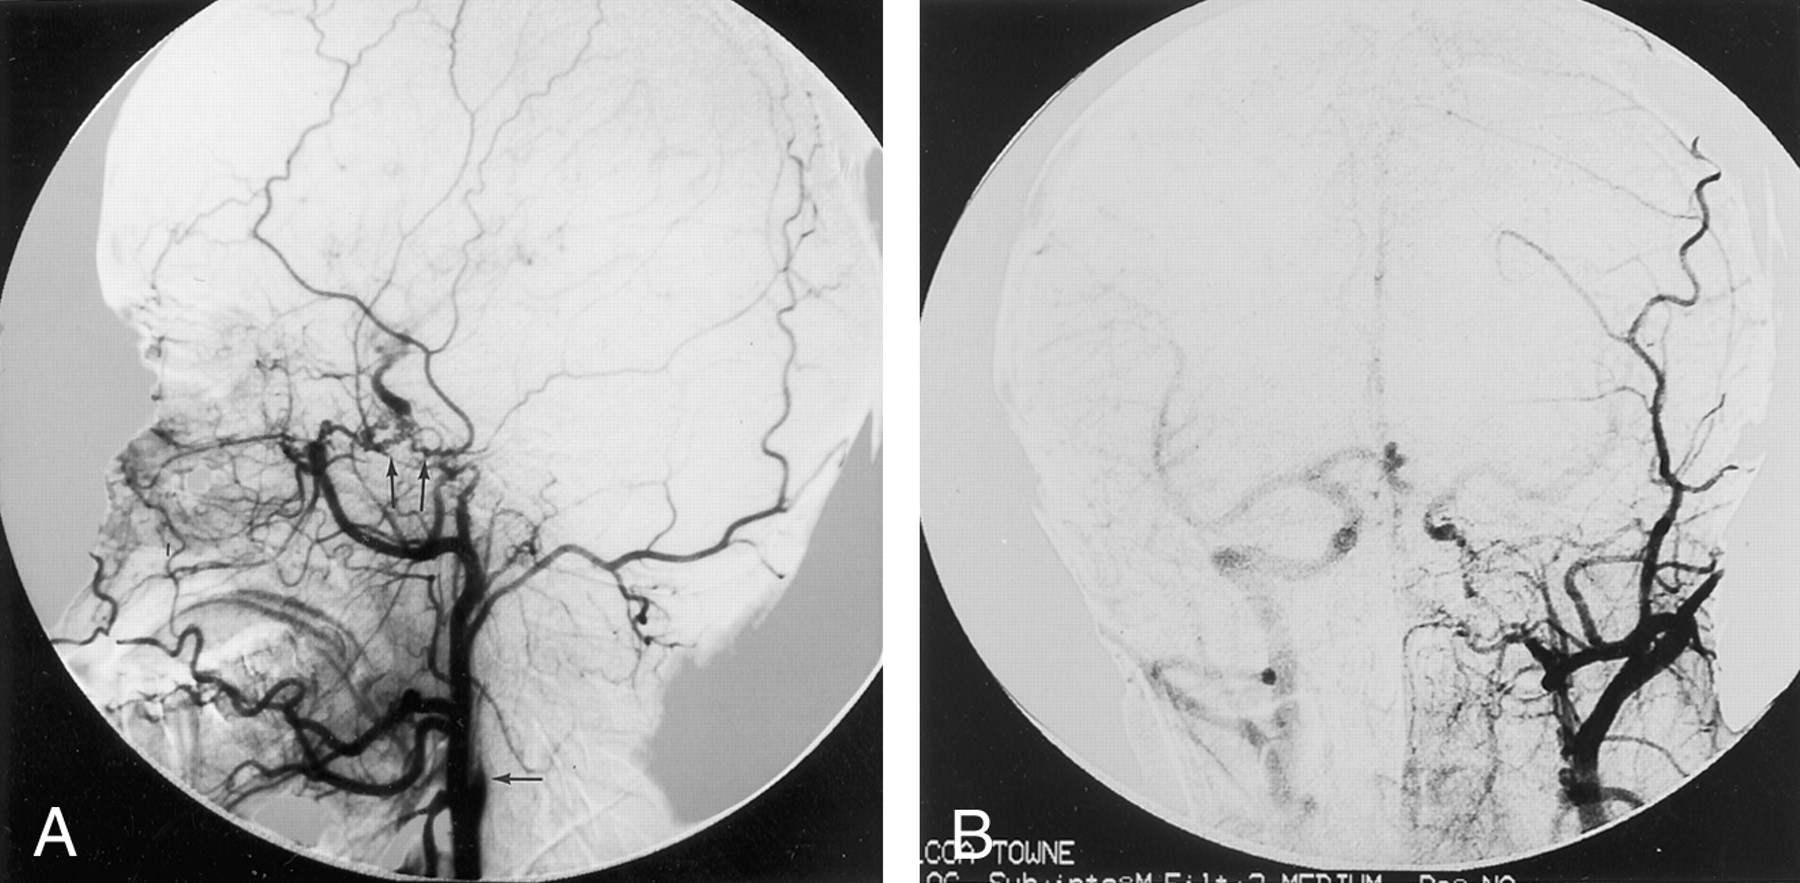 Agenesis Of The Internal Carotid Artery Associated With Aortic Arch